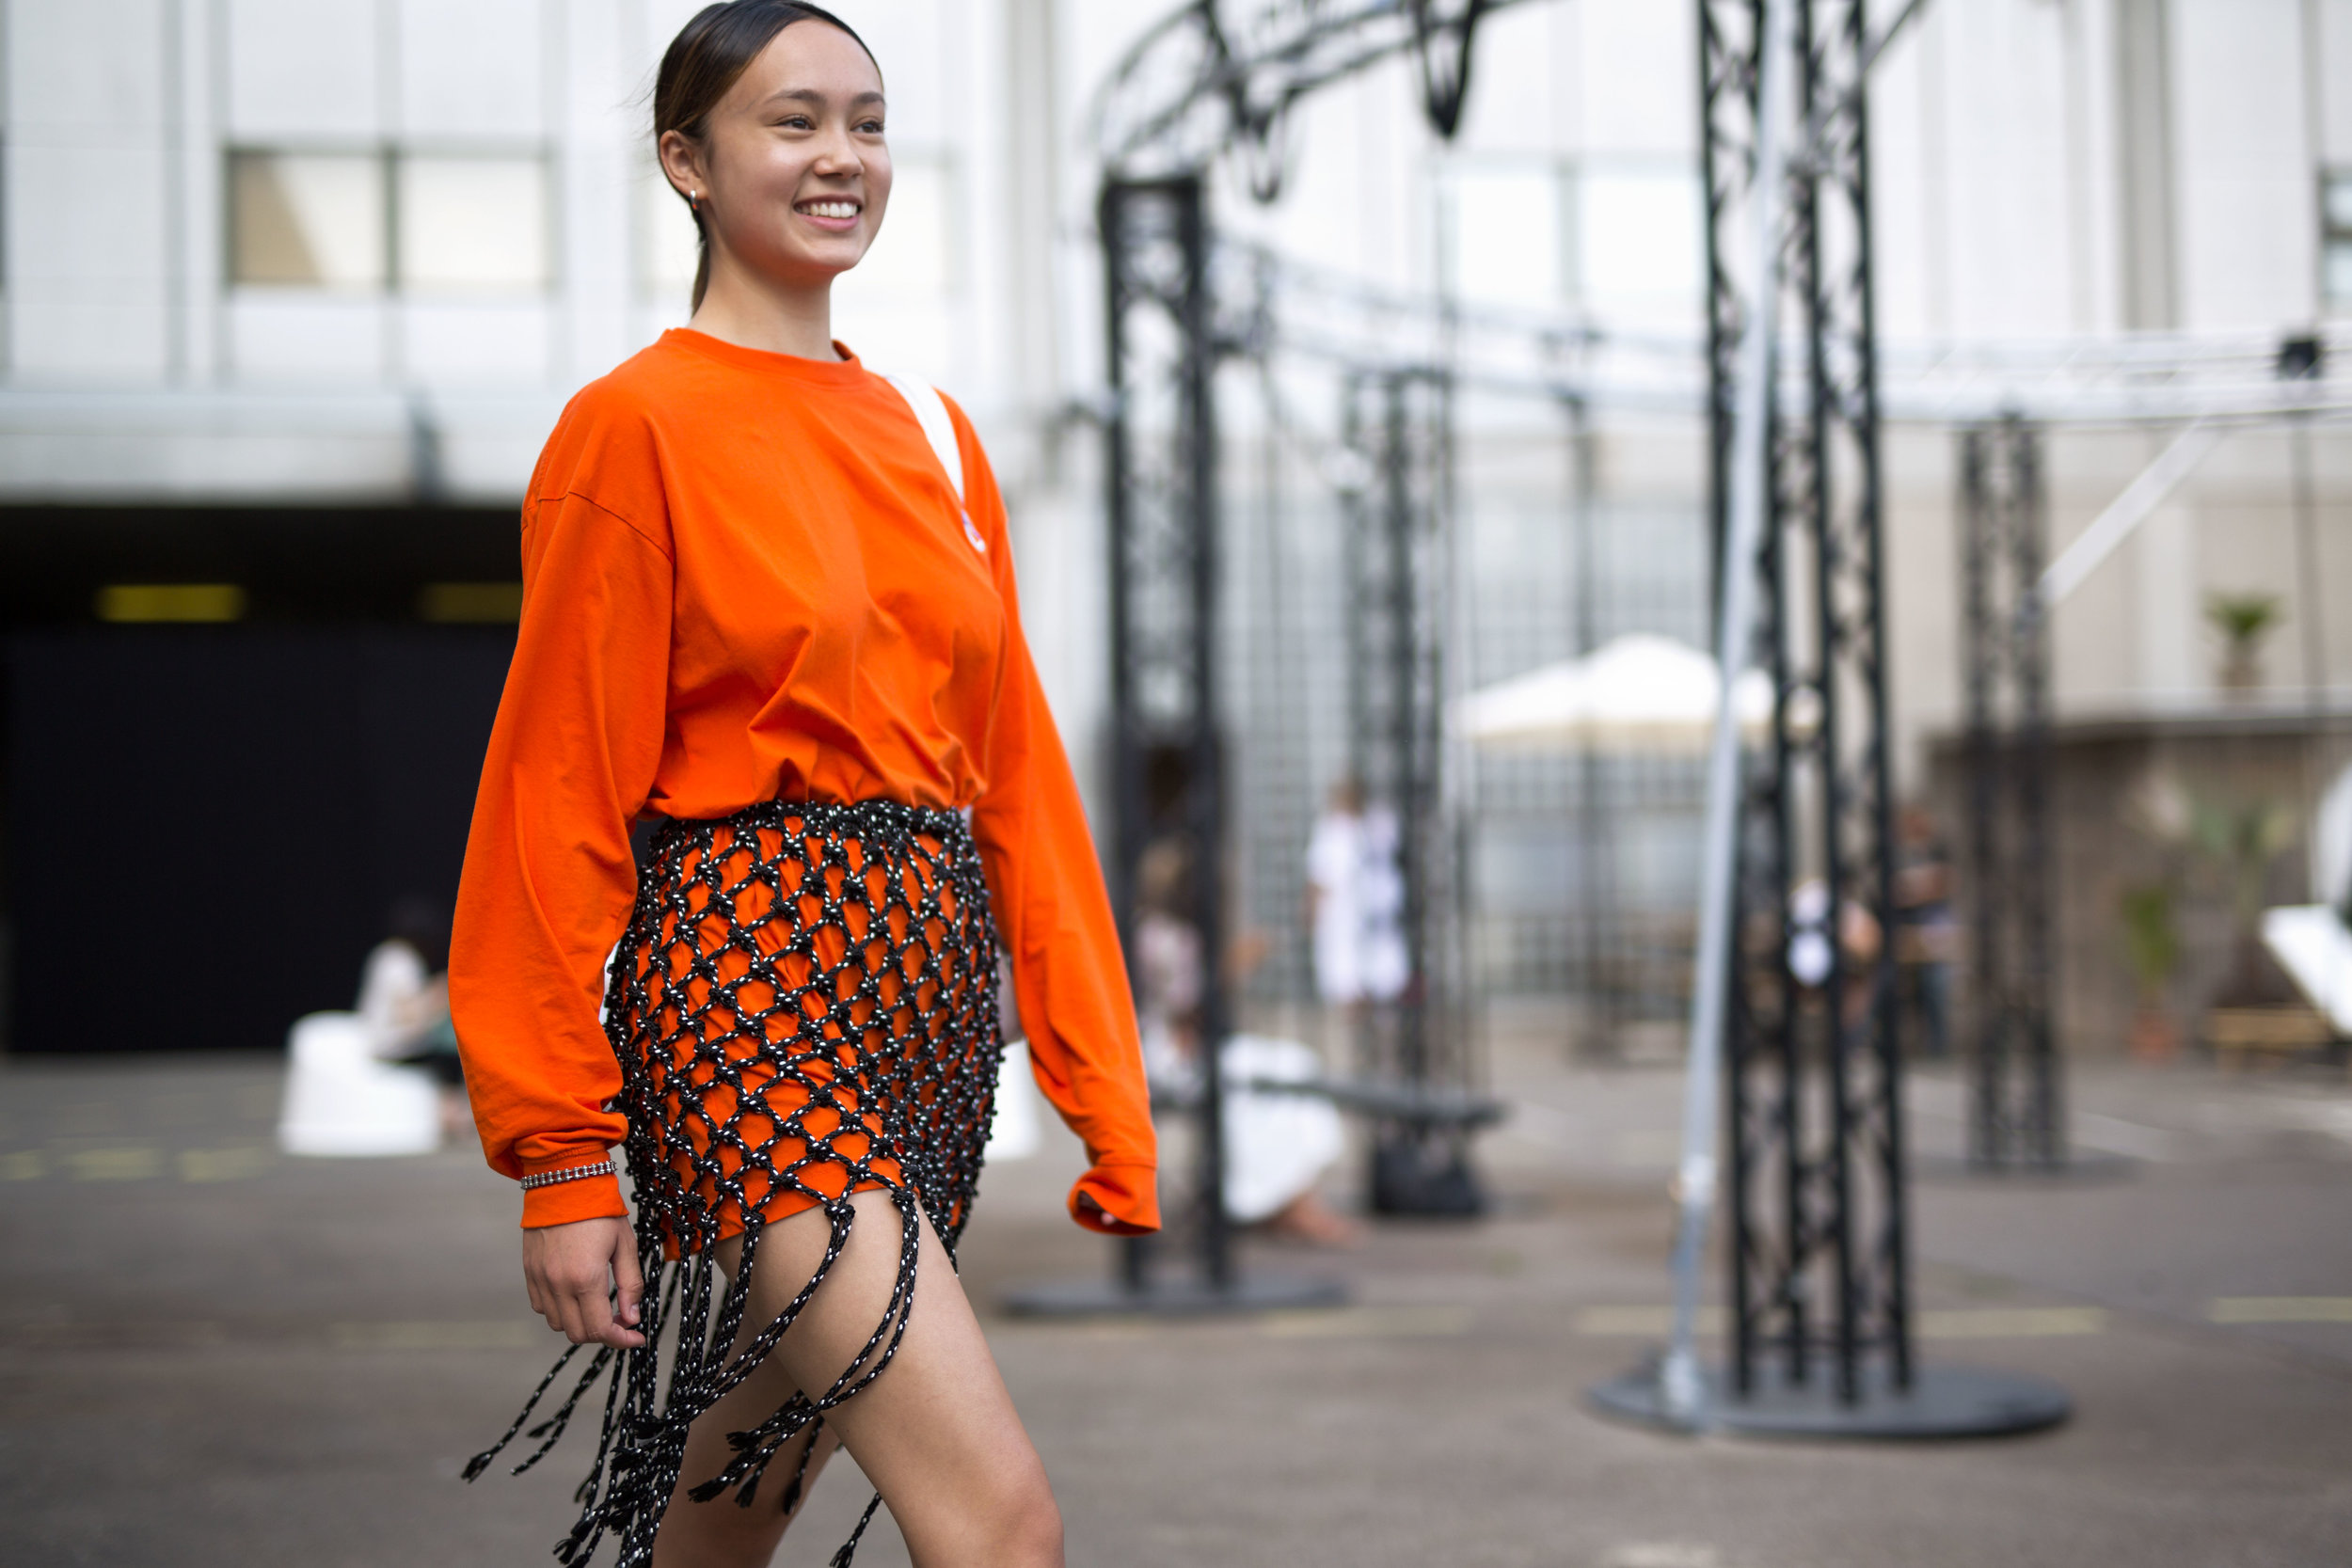 TheStreetland_Copenhagen_Fashion_Week_SS19_85.jpg